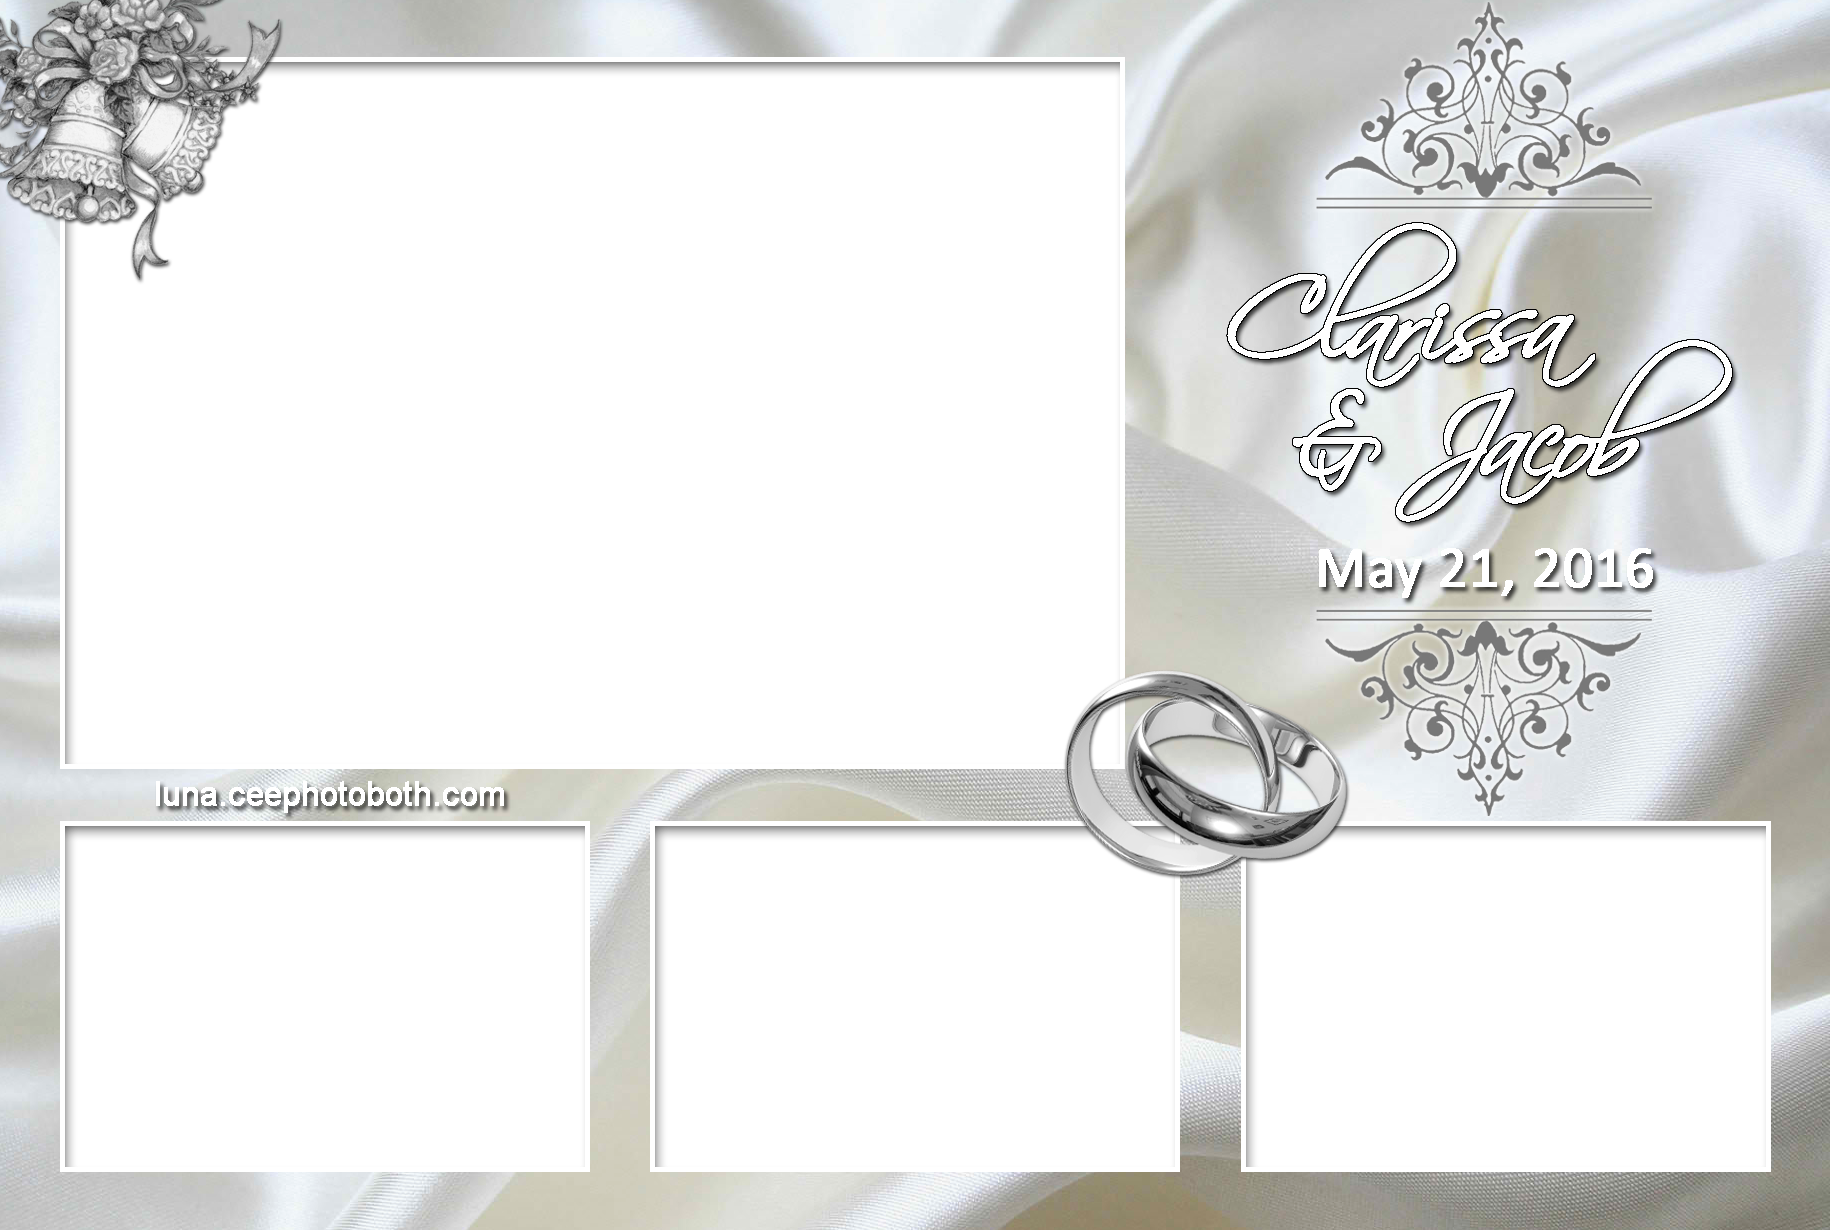 wedding photo booth layout 1